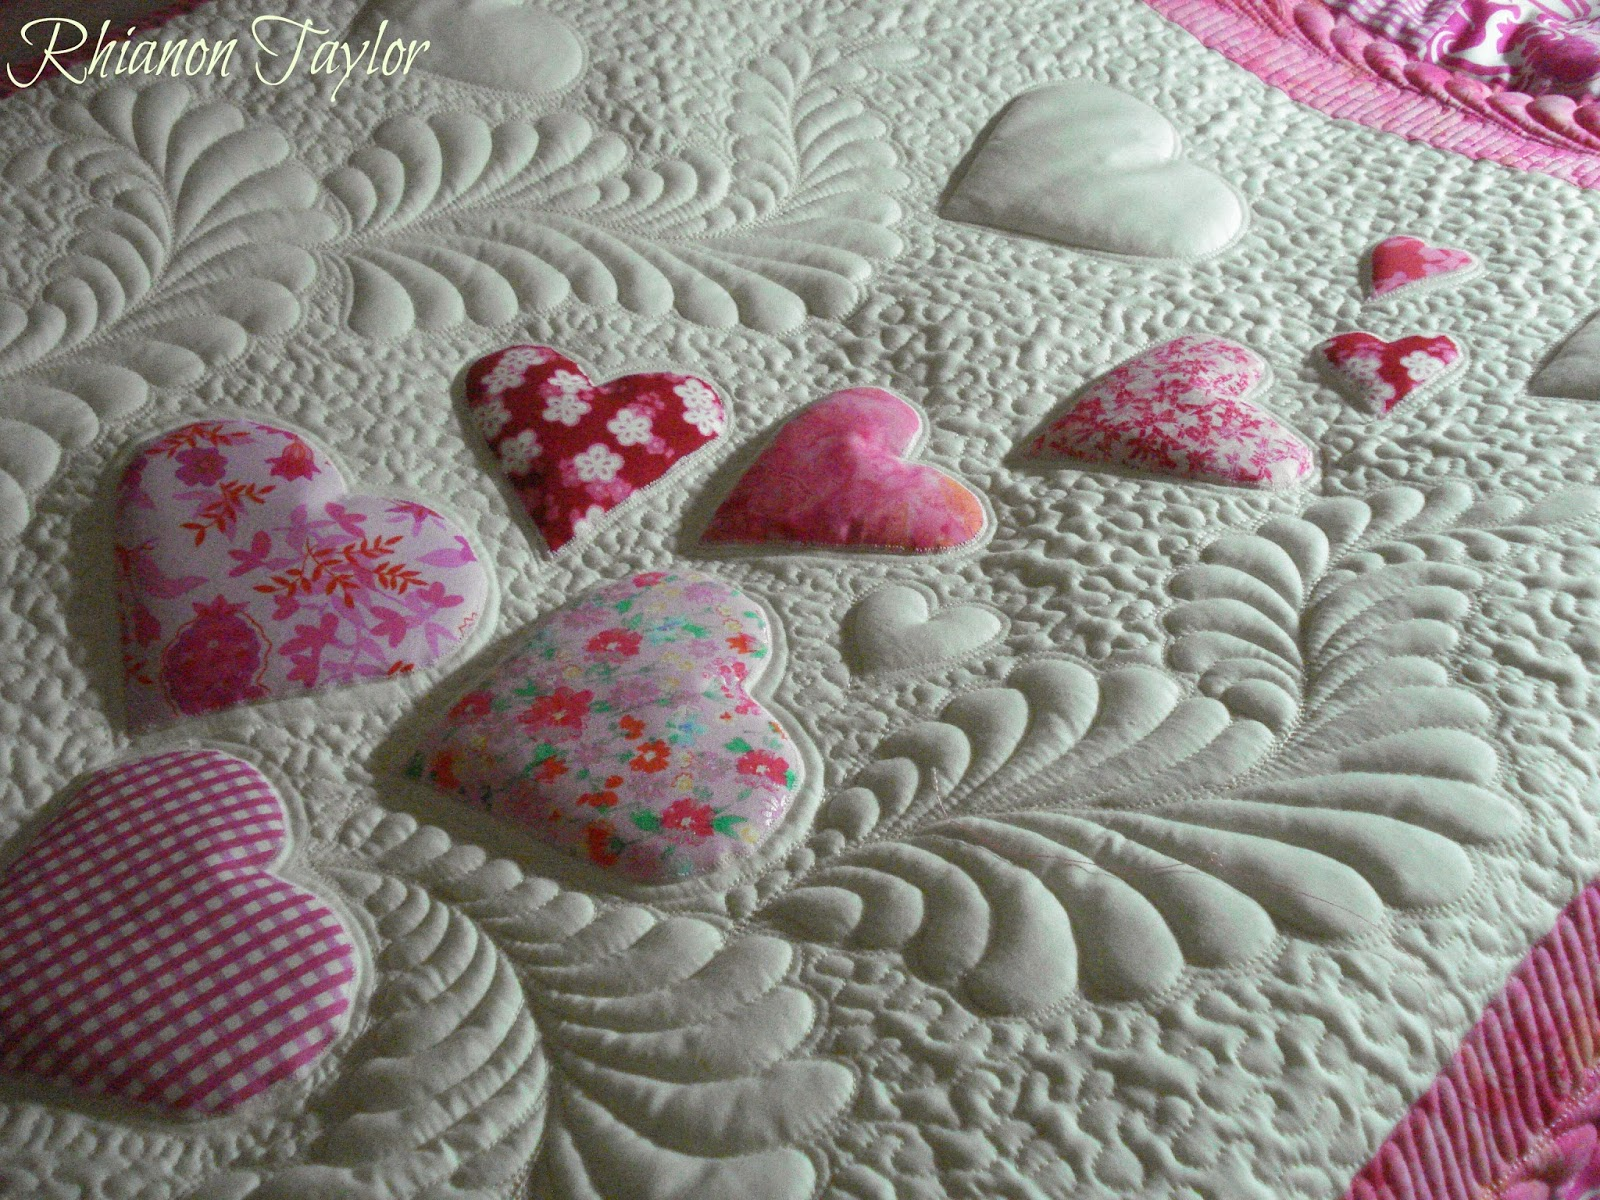 The Nifty Stitcher: Floating Hearts Baby Quilt